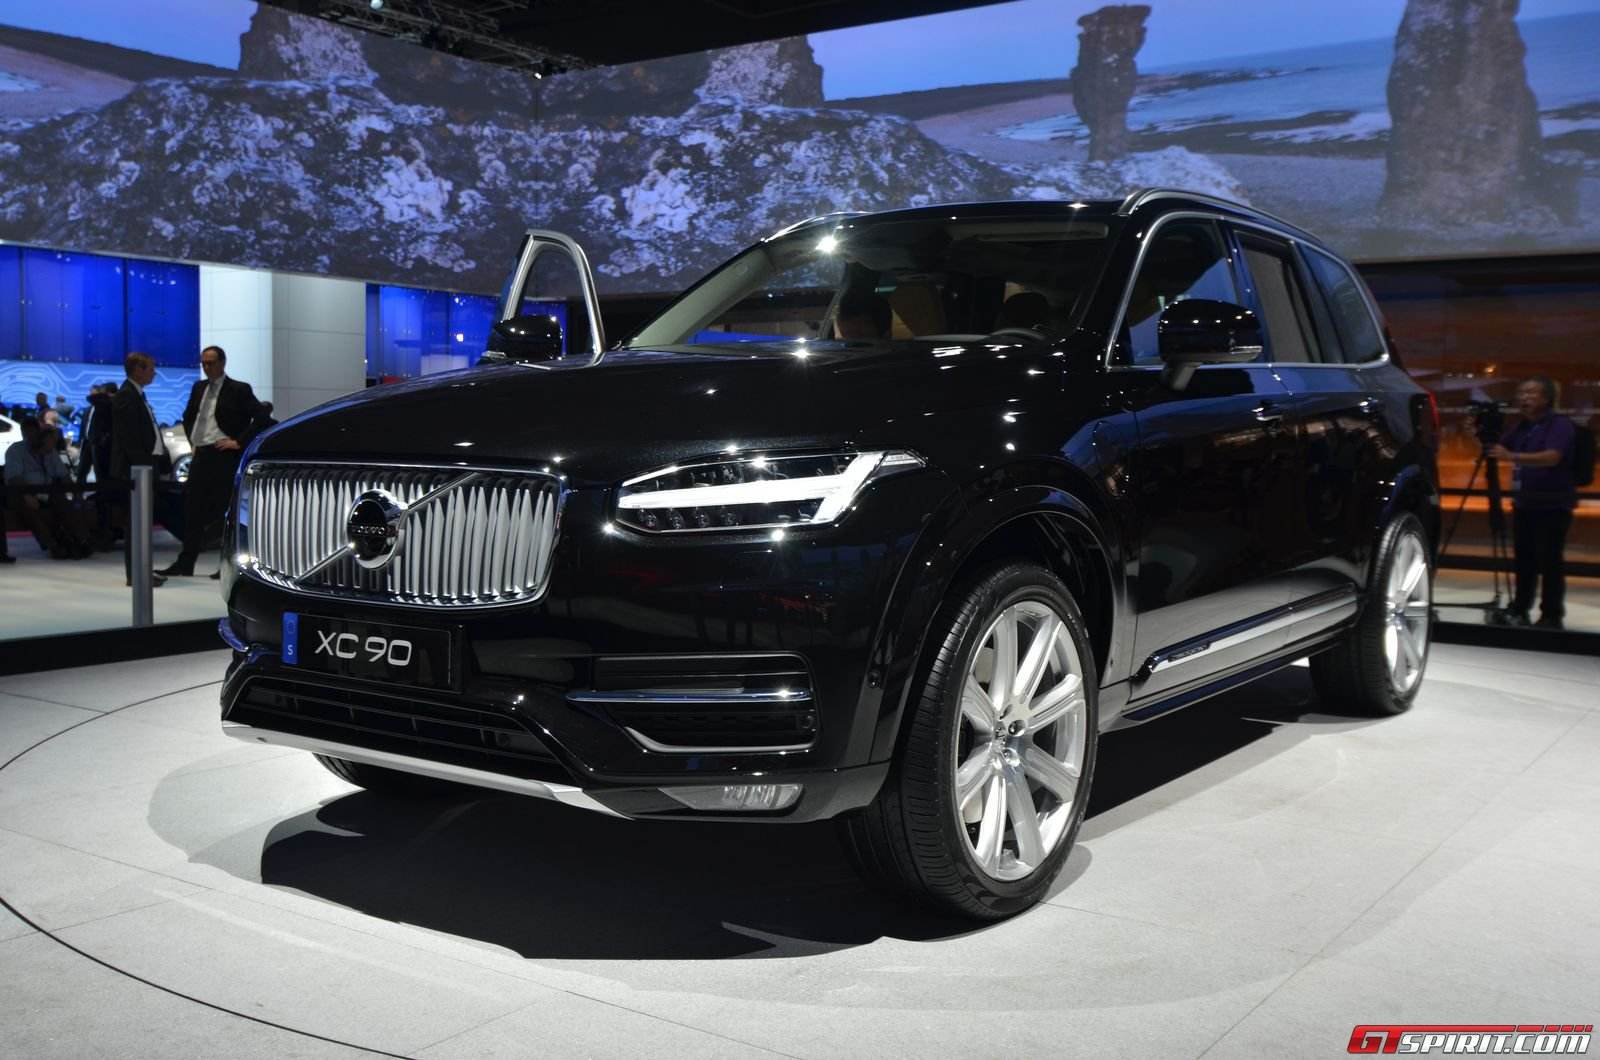 paris 2014 2016 volvo xc90 gtspirit. Black Bedroom Furniture Sets. Home Design Ideas